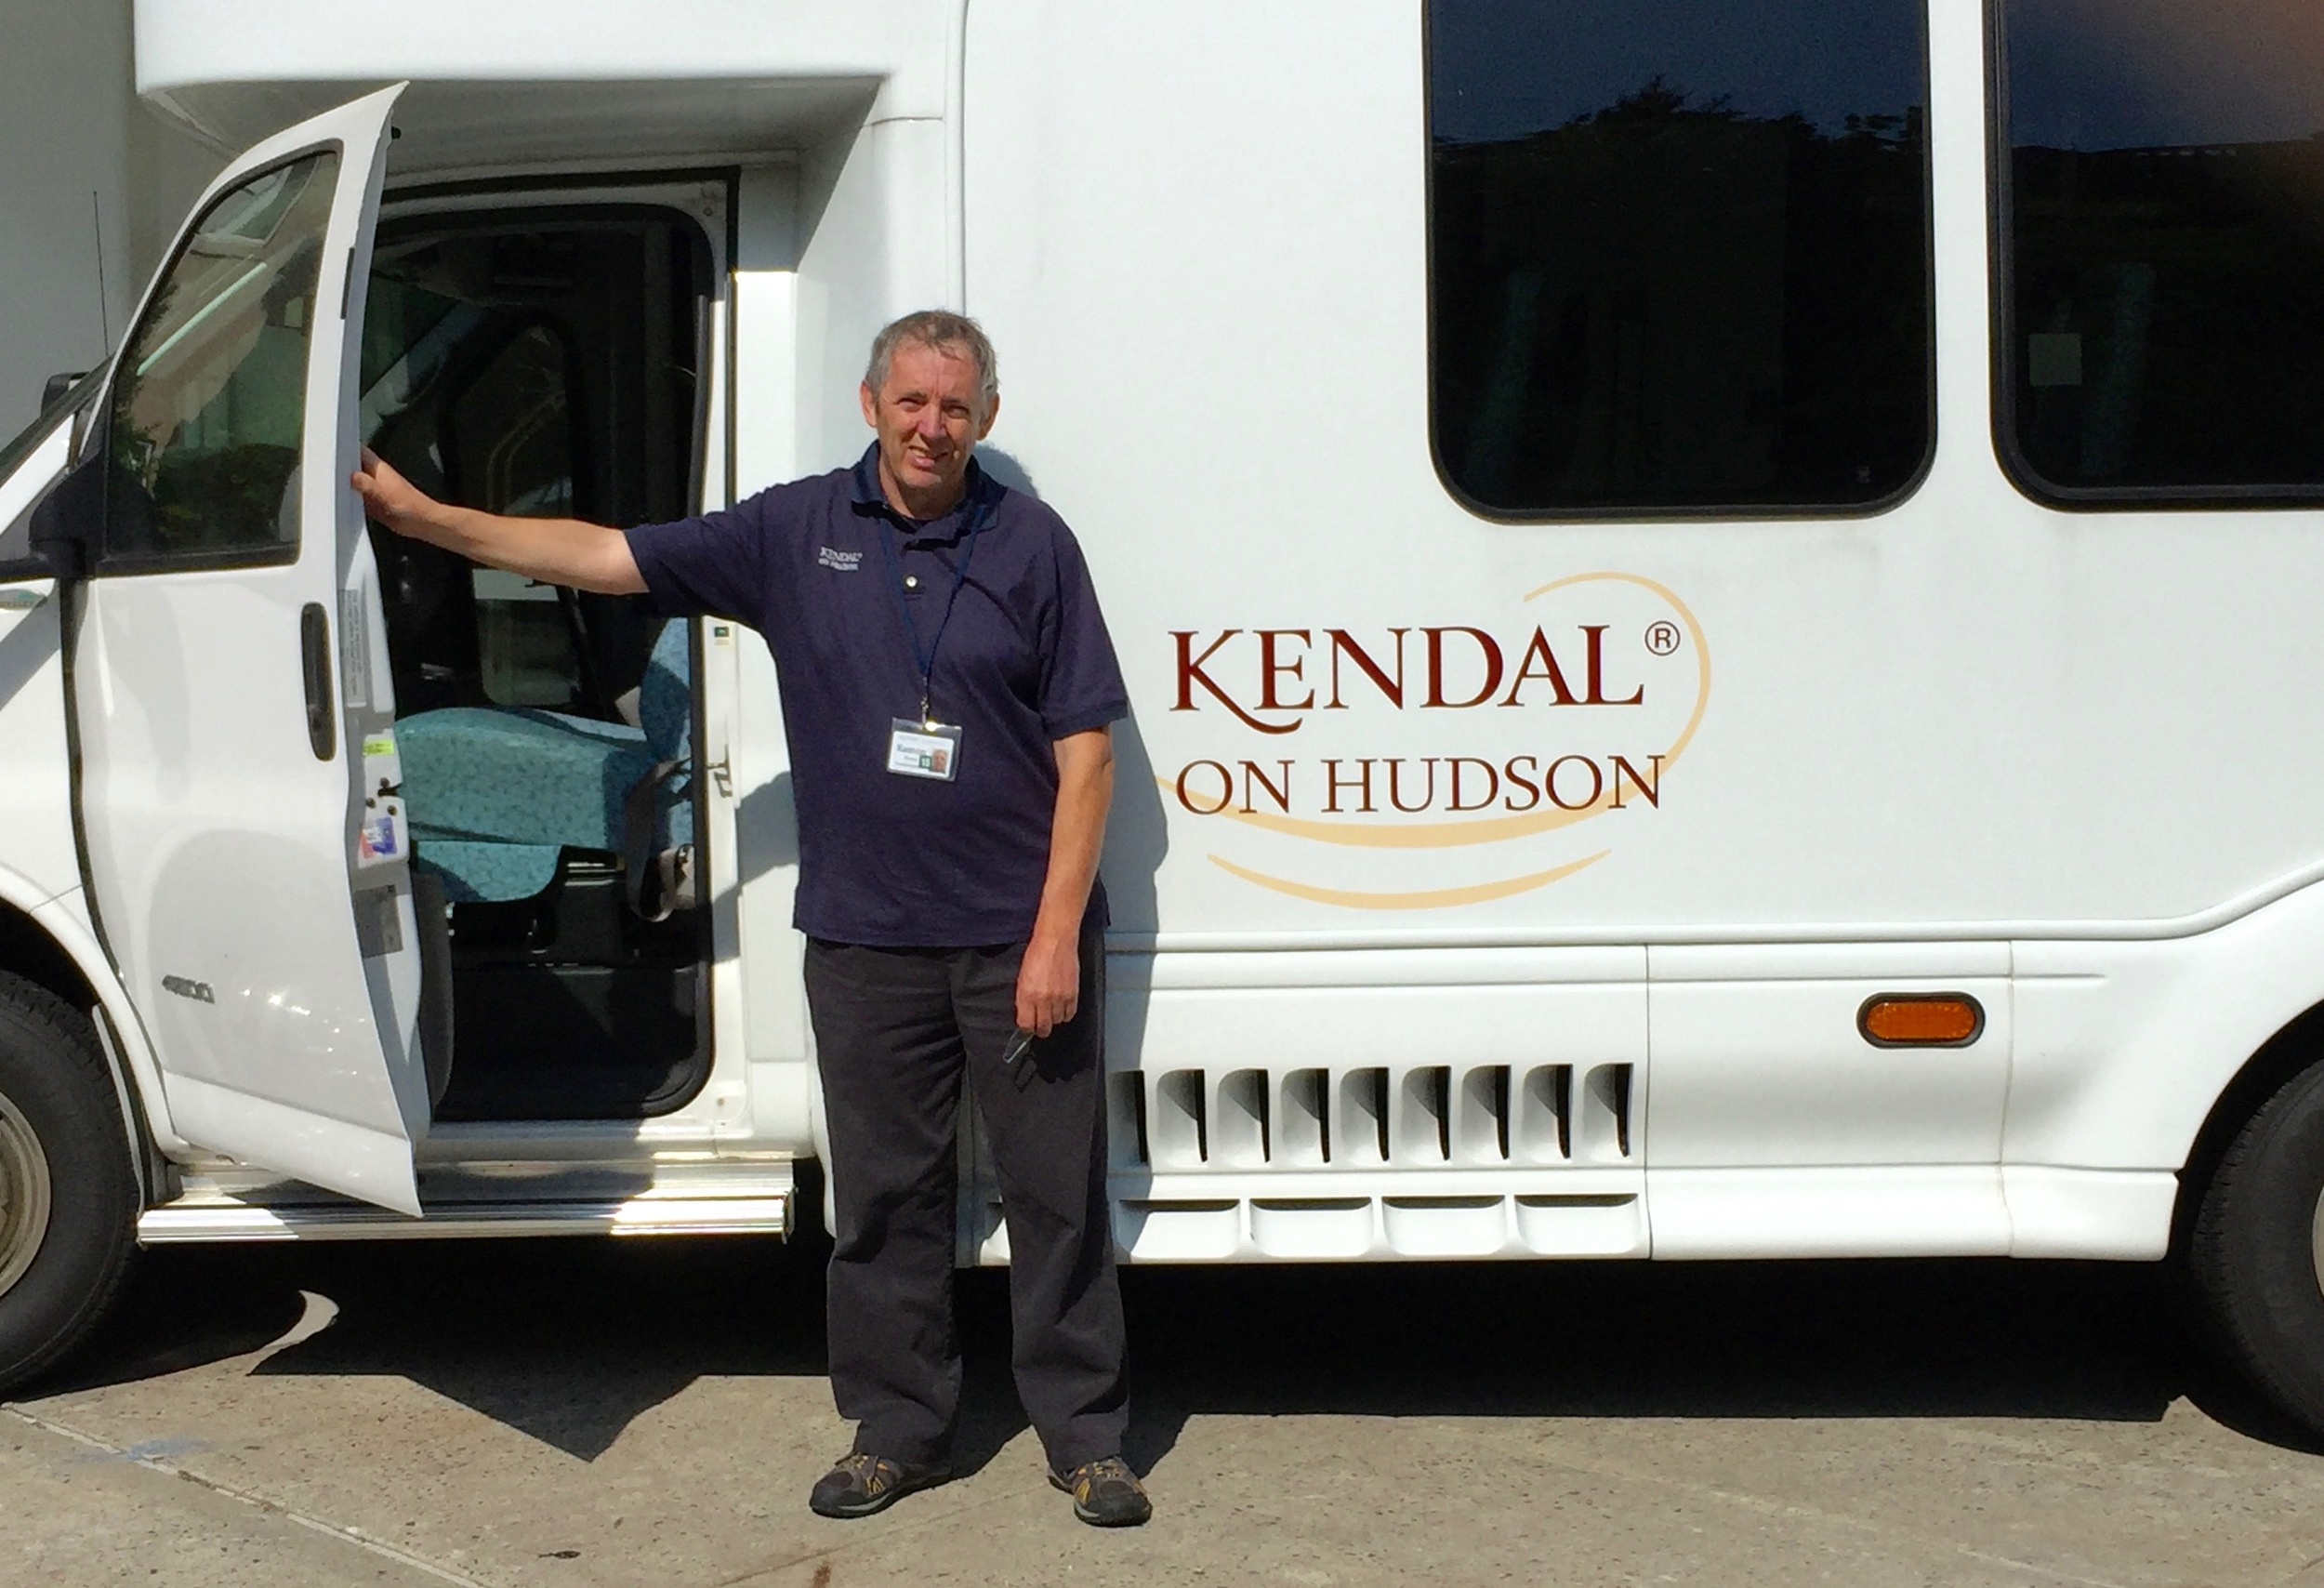 Eamon Byrne, Kendal driver since 2015, with one of the buses.